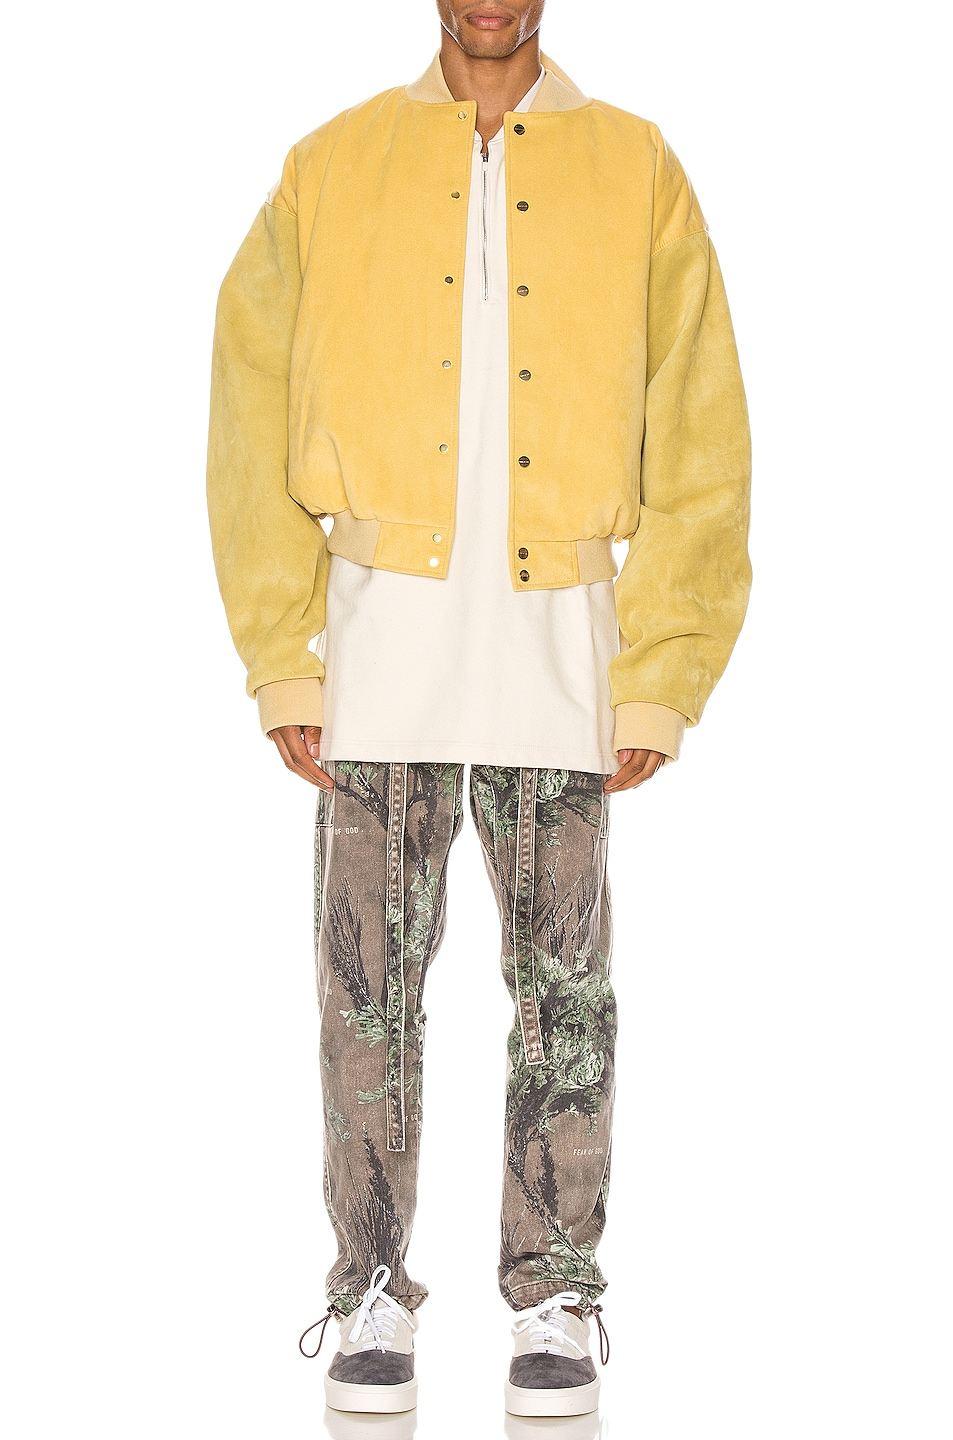 Image 6 of Fear of God 6th Collection Varsity Jacket in Garden Glove Yellow